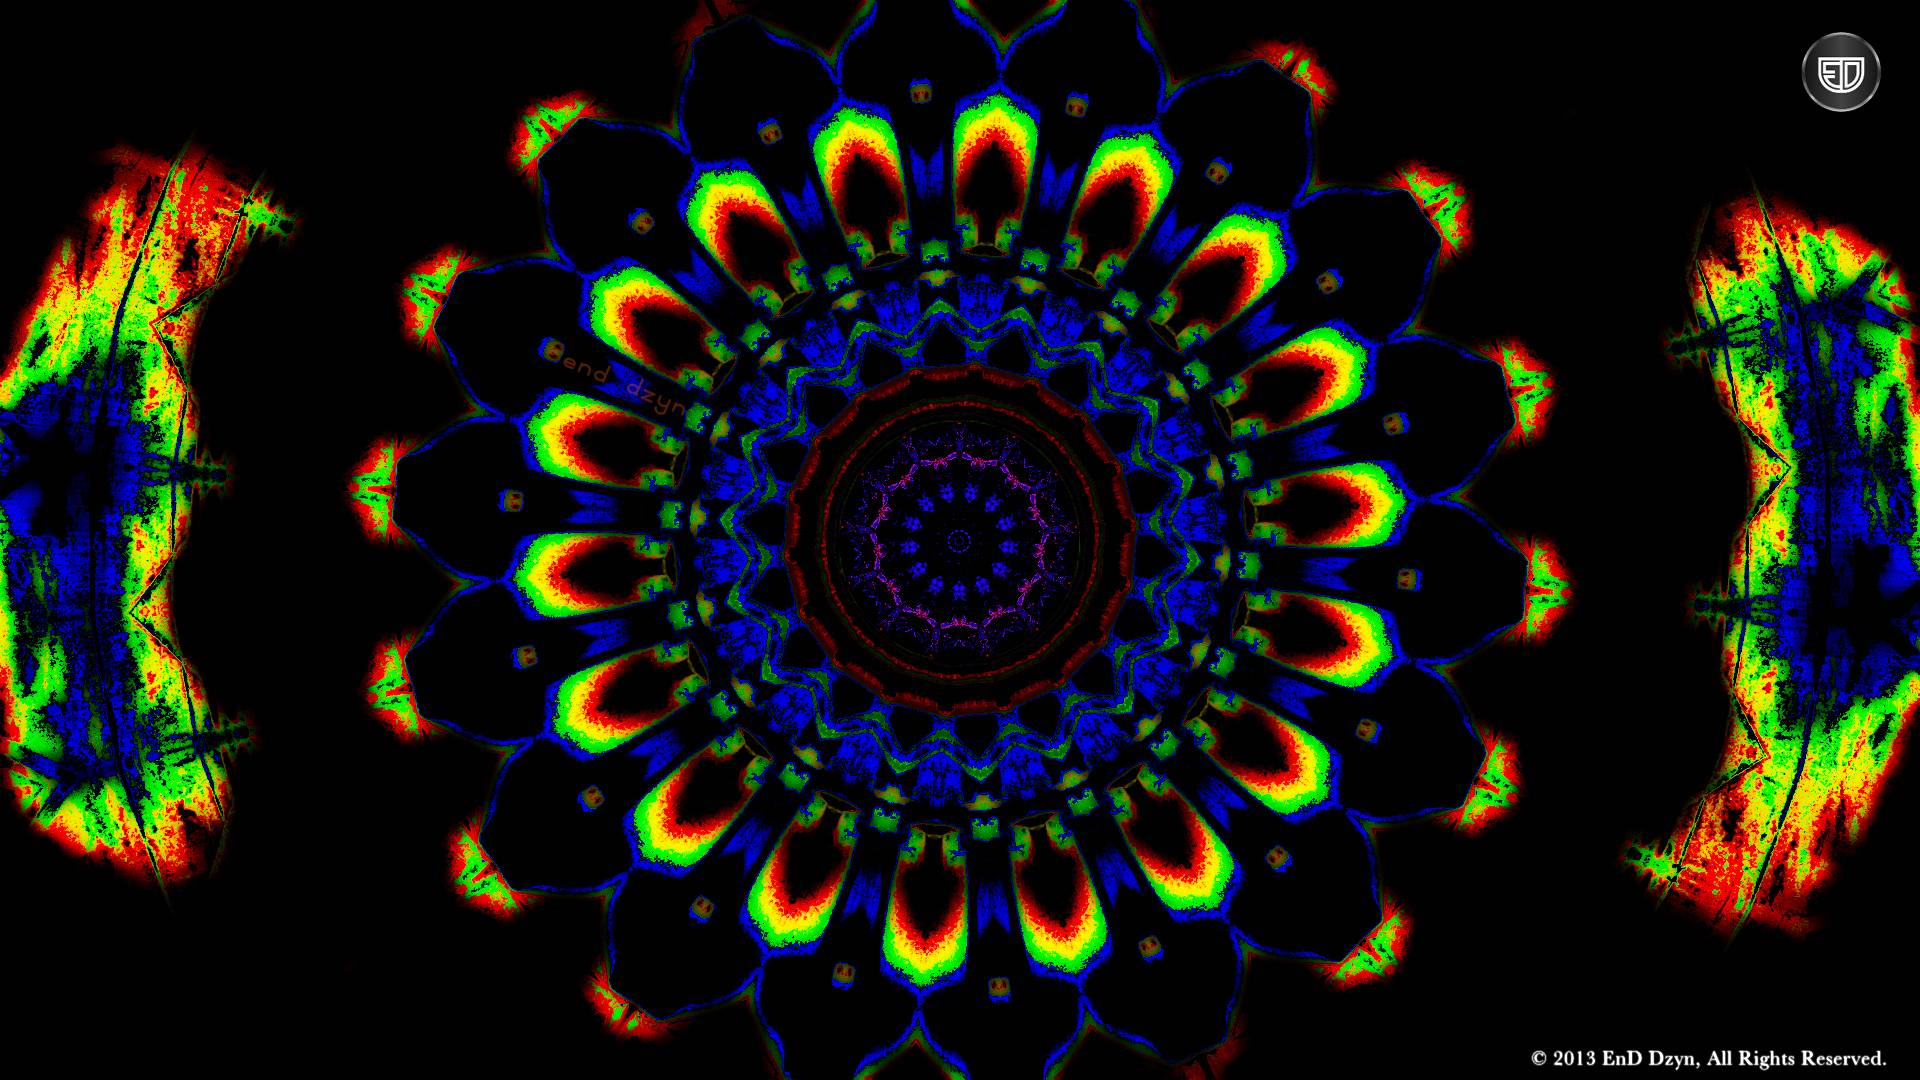 Free Download Hd Trippy Wallpapers Hd 1920x1080 For Your Desktop